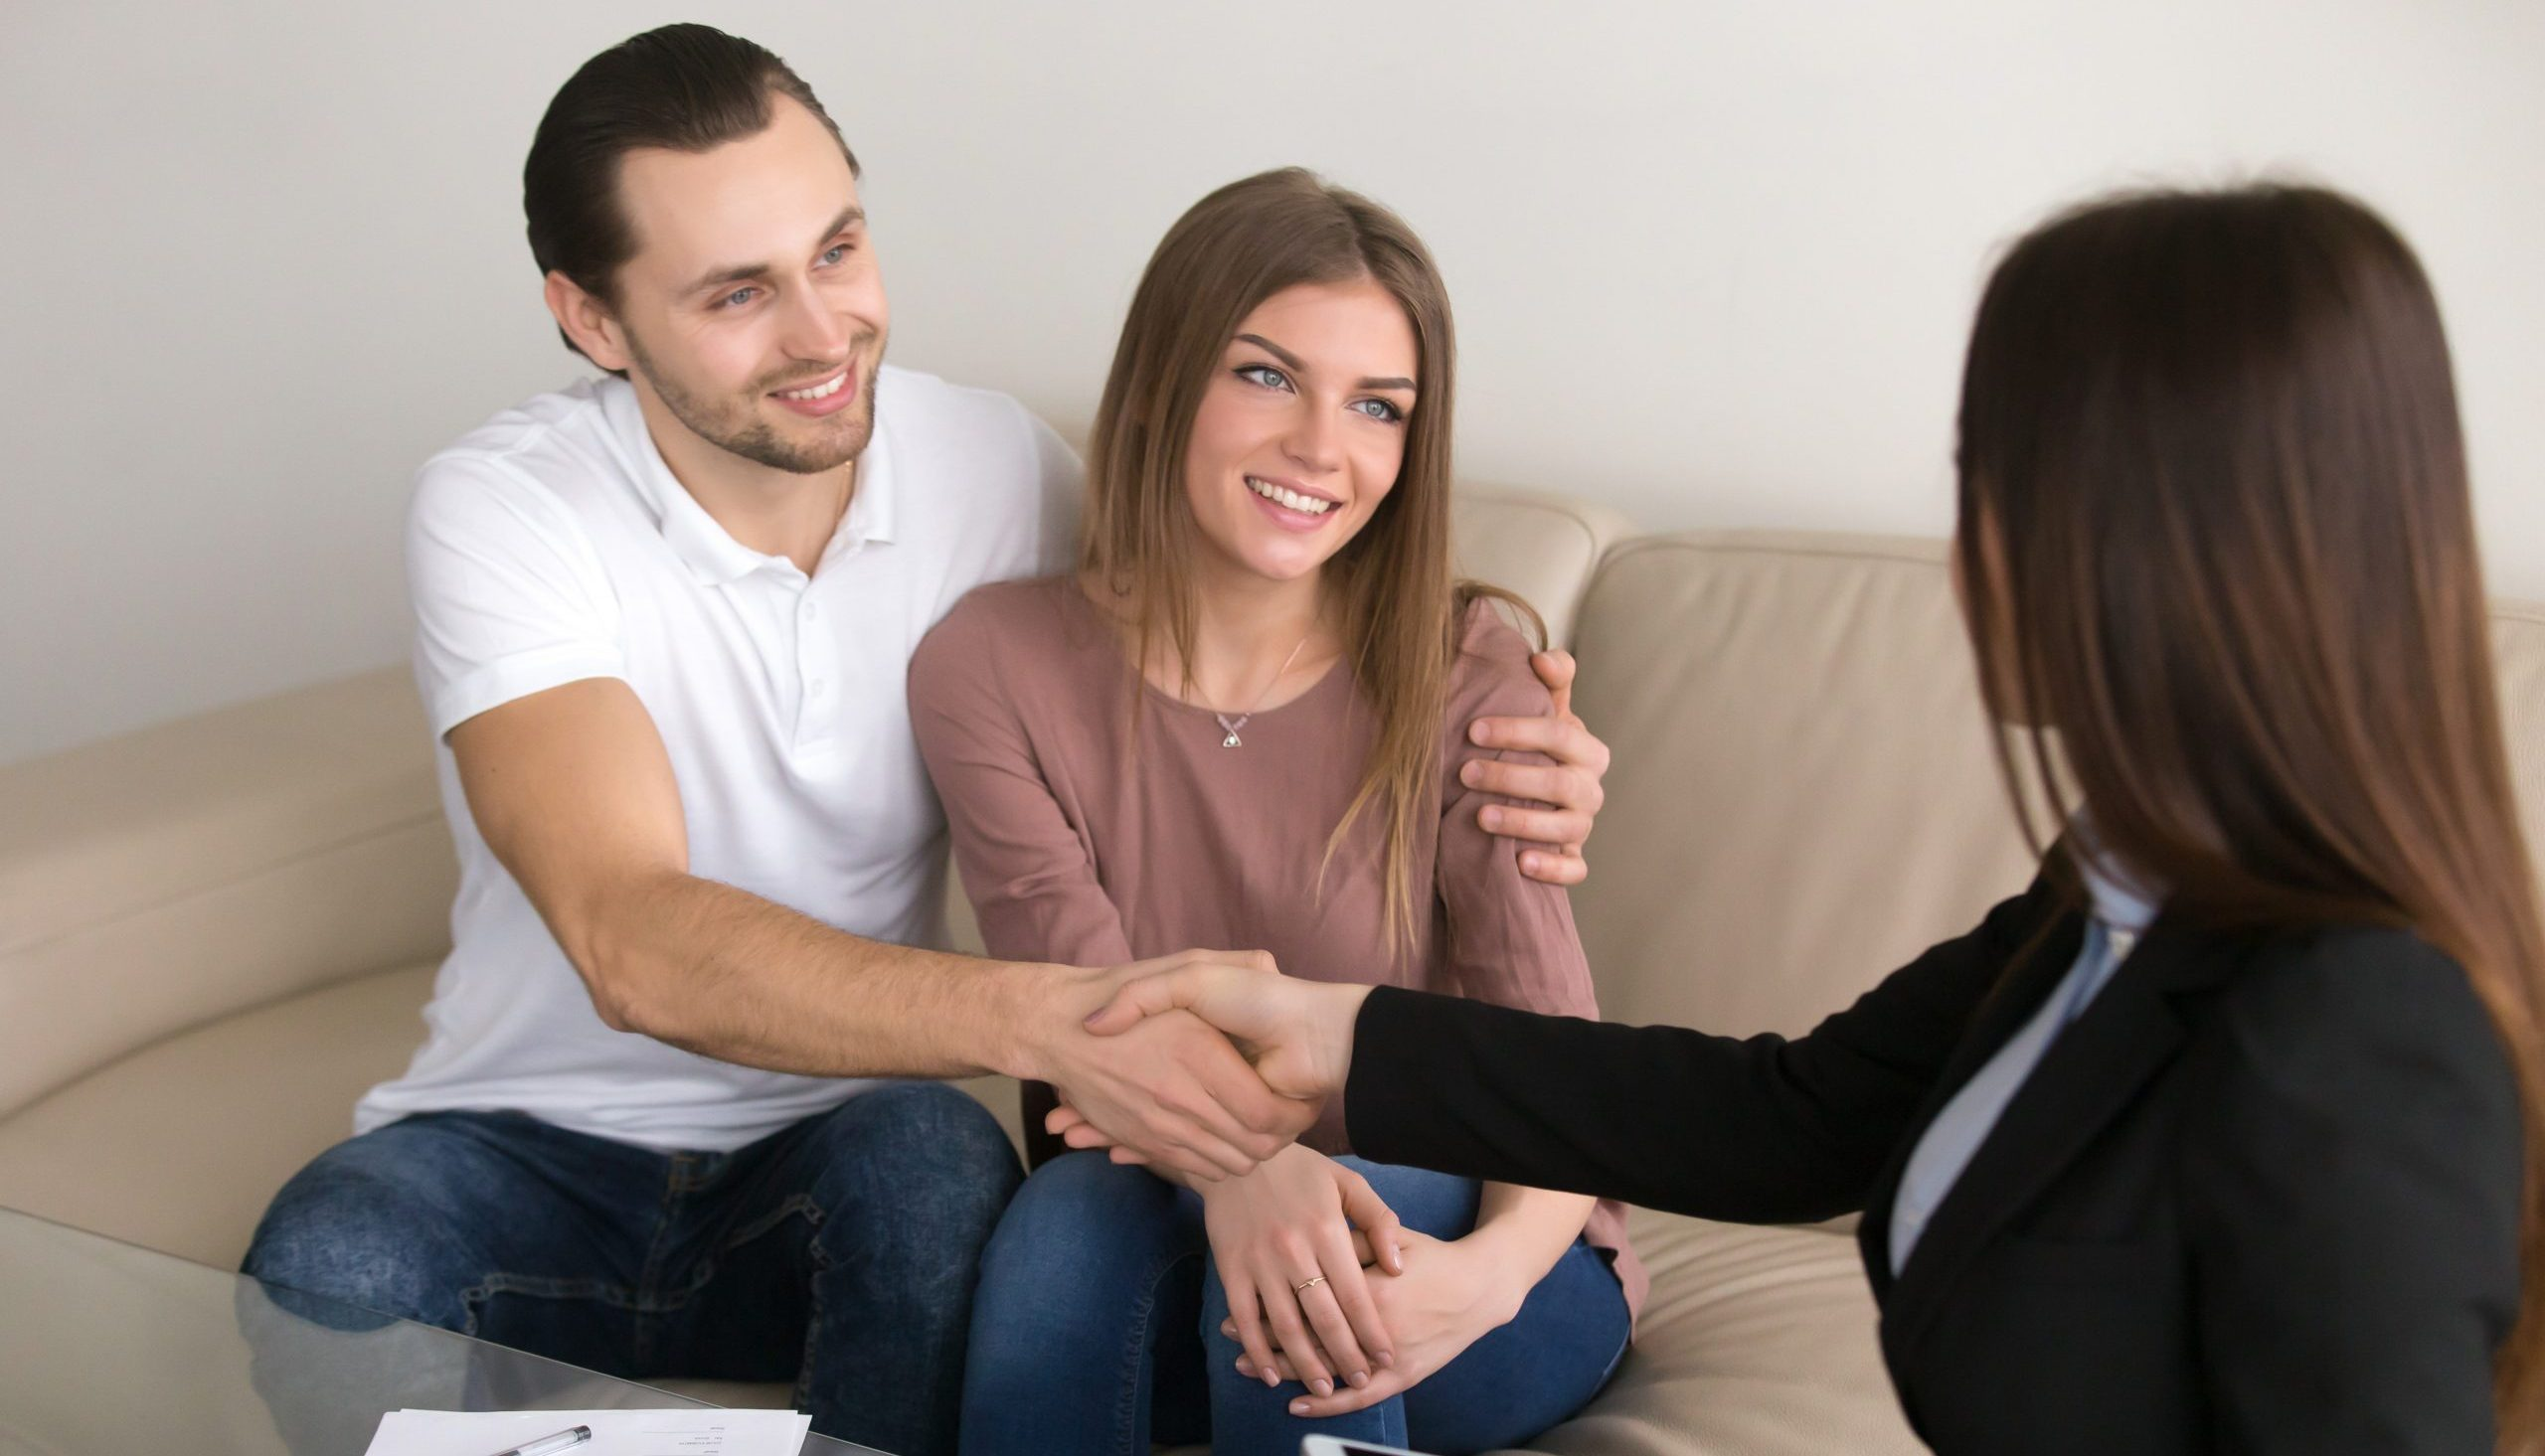 5 Things to Look for in a Mortgage Broker